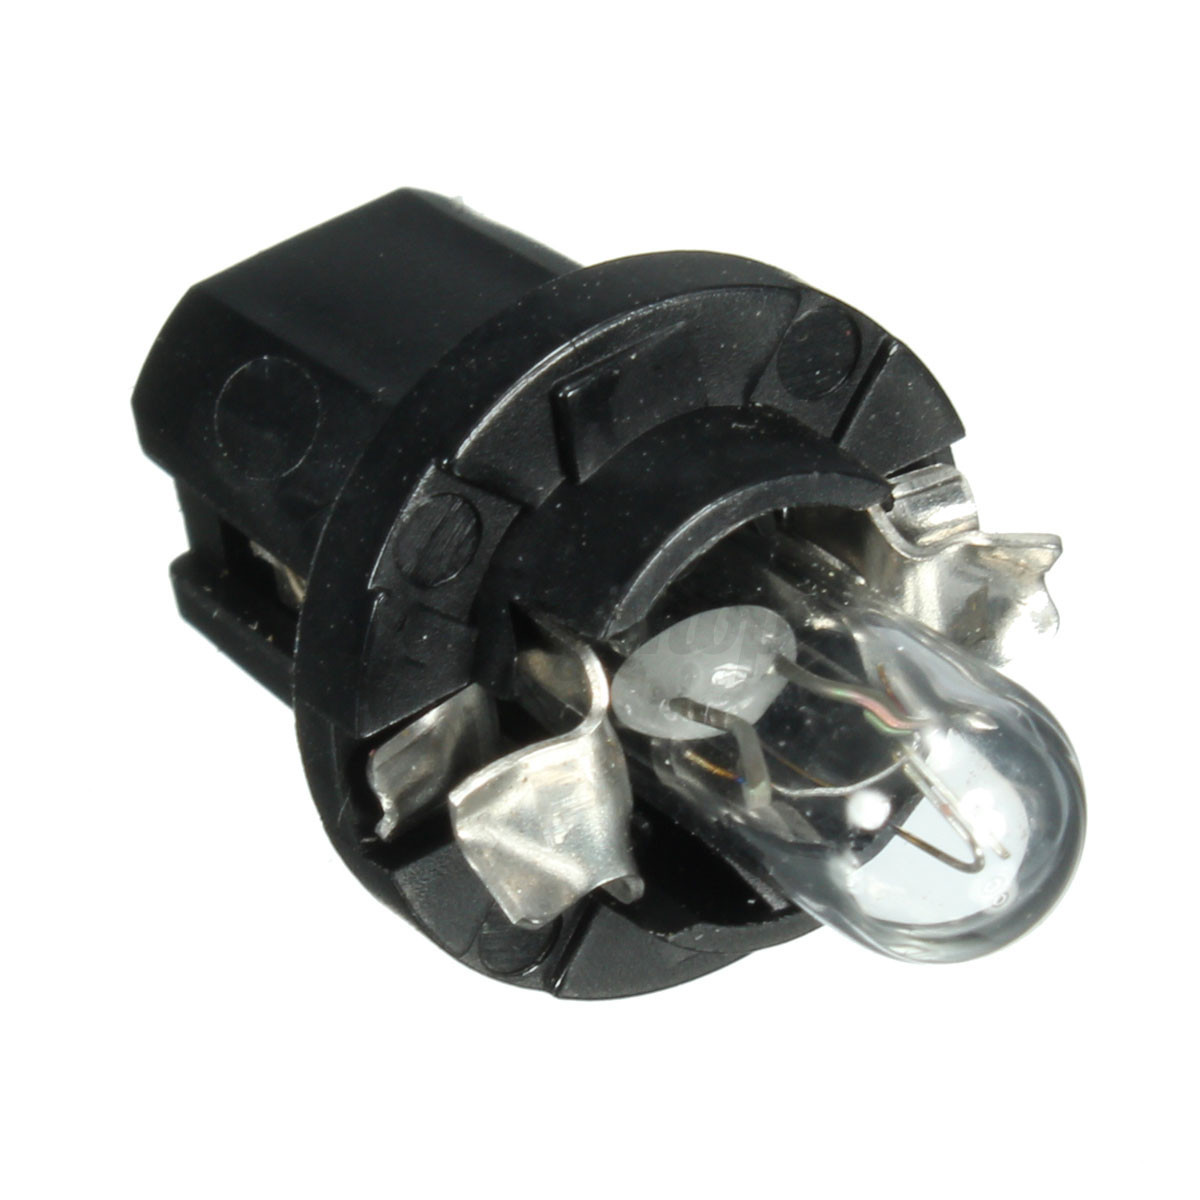 Dashboard Dash Speedo Cluster Bulb Holder For Citroen Xsara